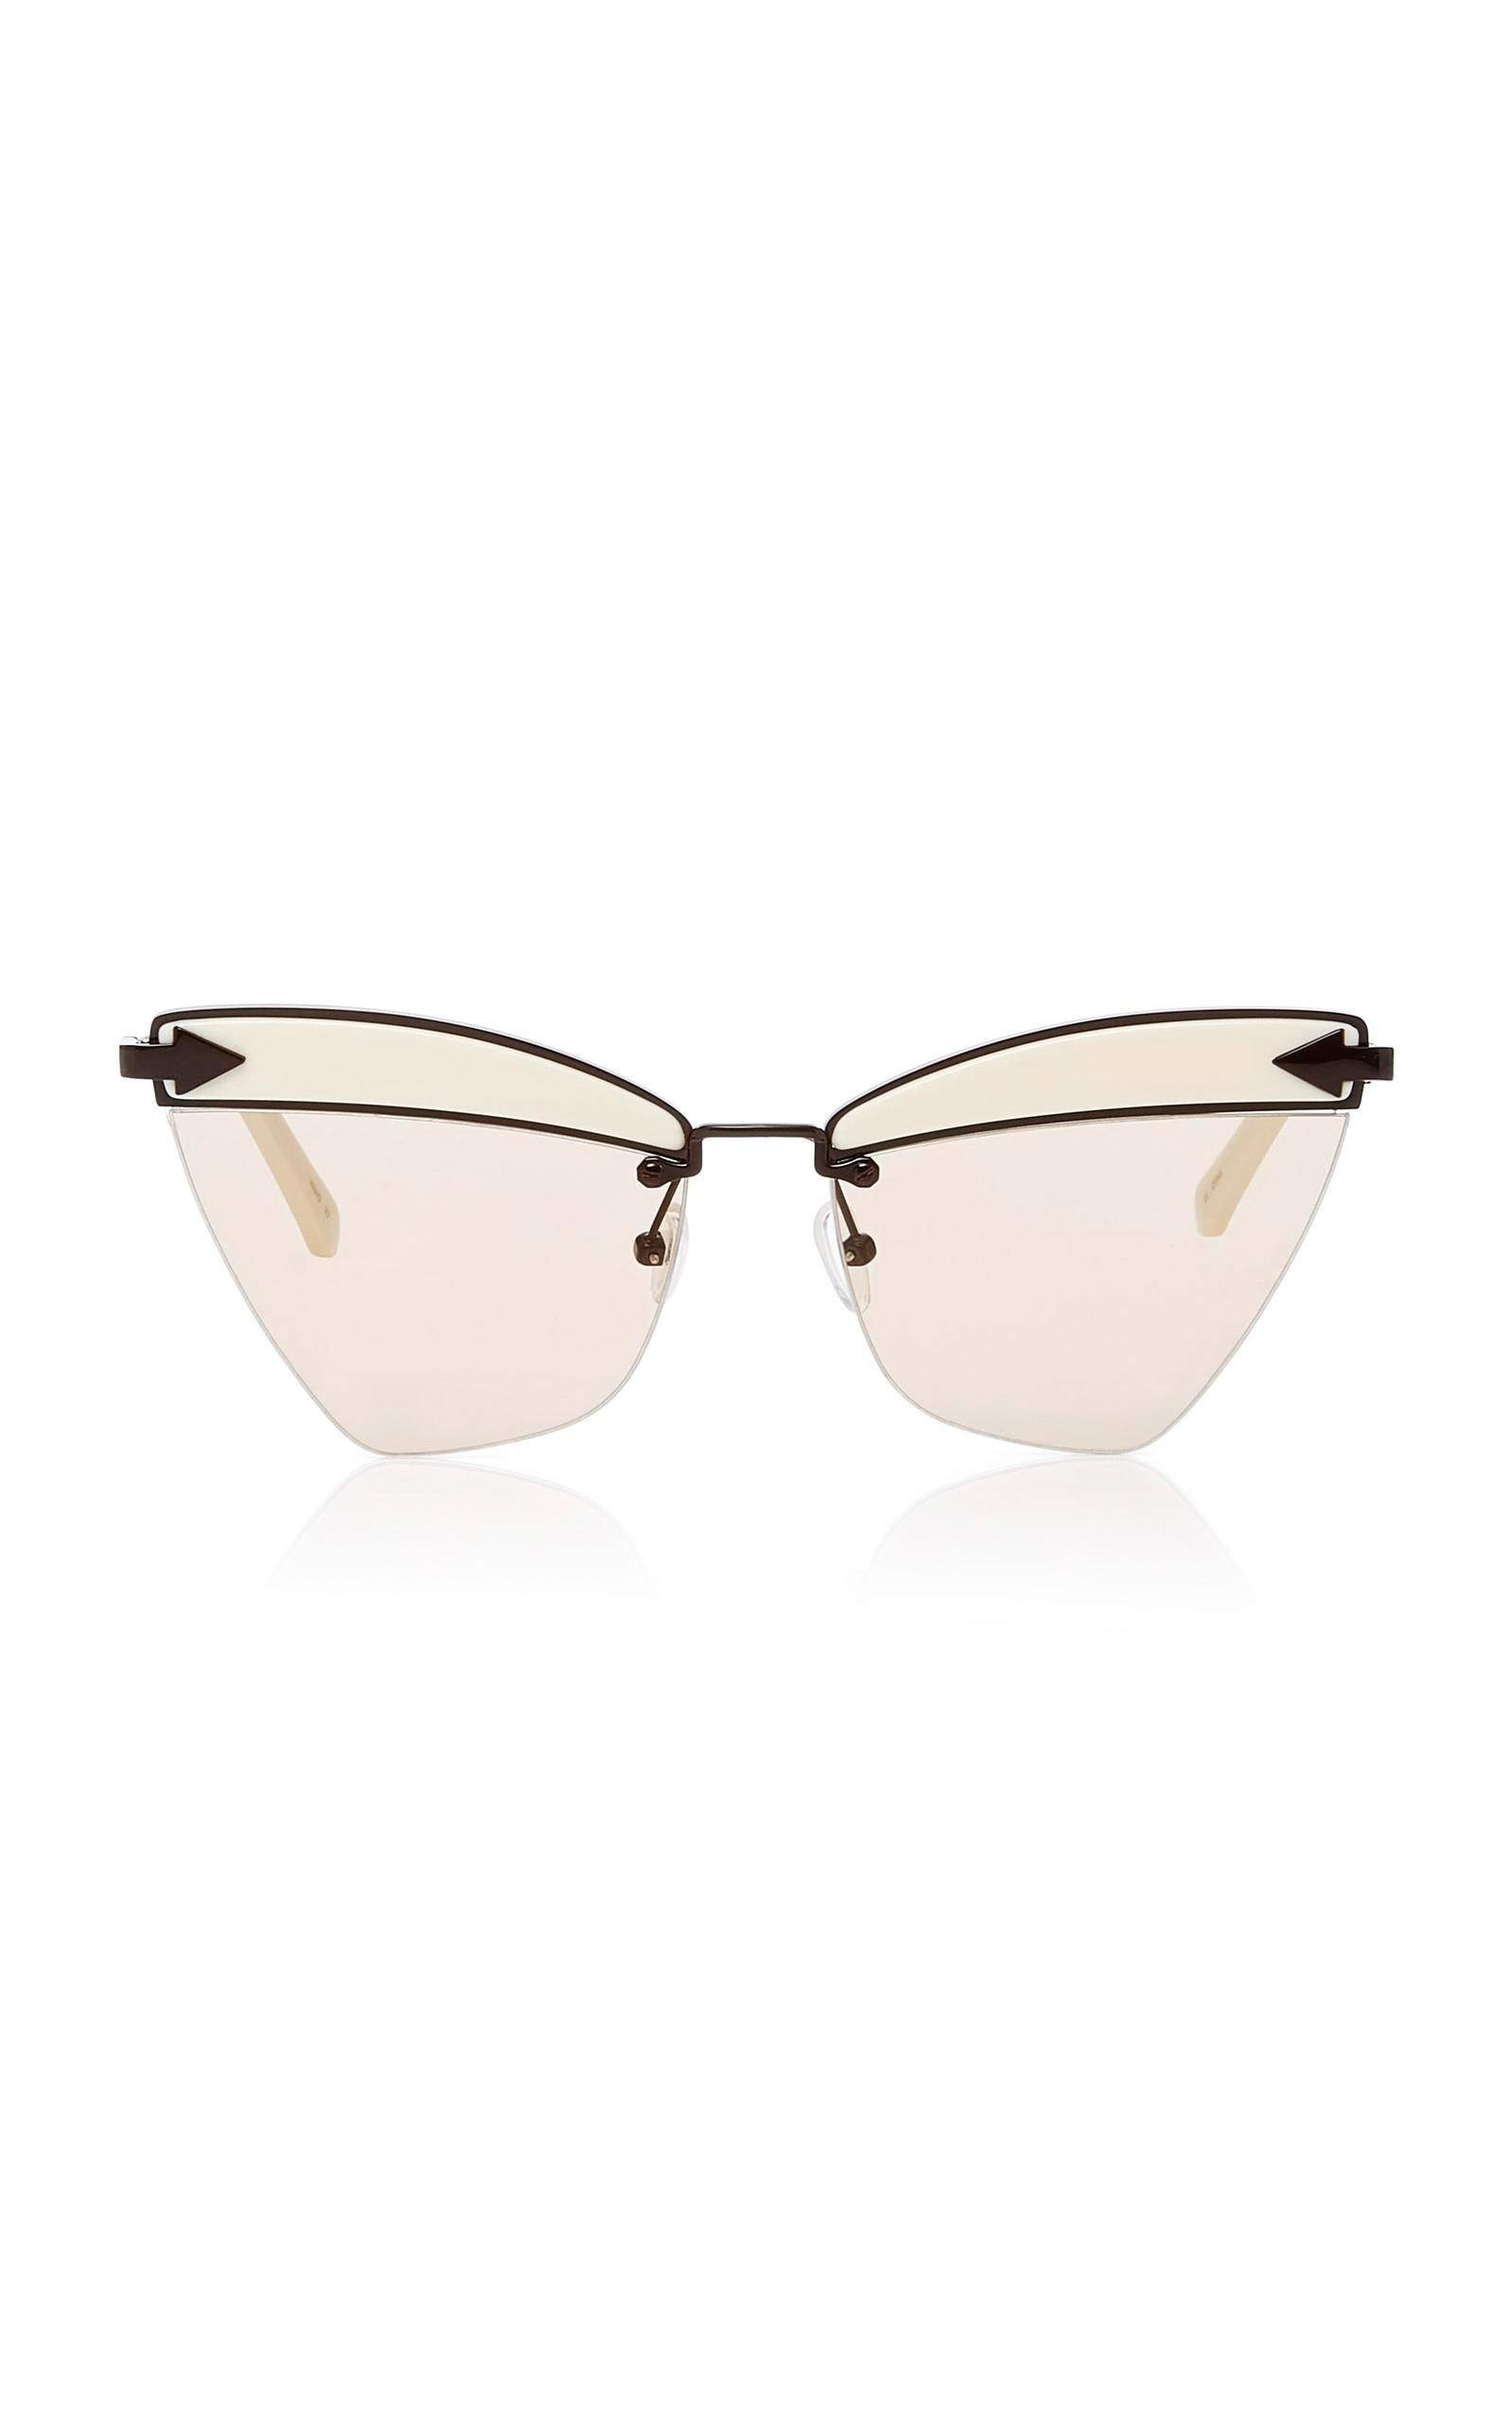 d1c8c2e2114 Lyst - Karen Walker Sadie Cat-eye Acetate And Metal Sunglasses in White